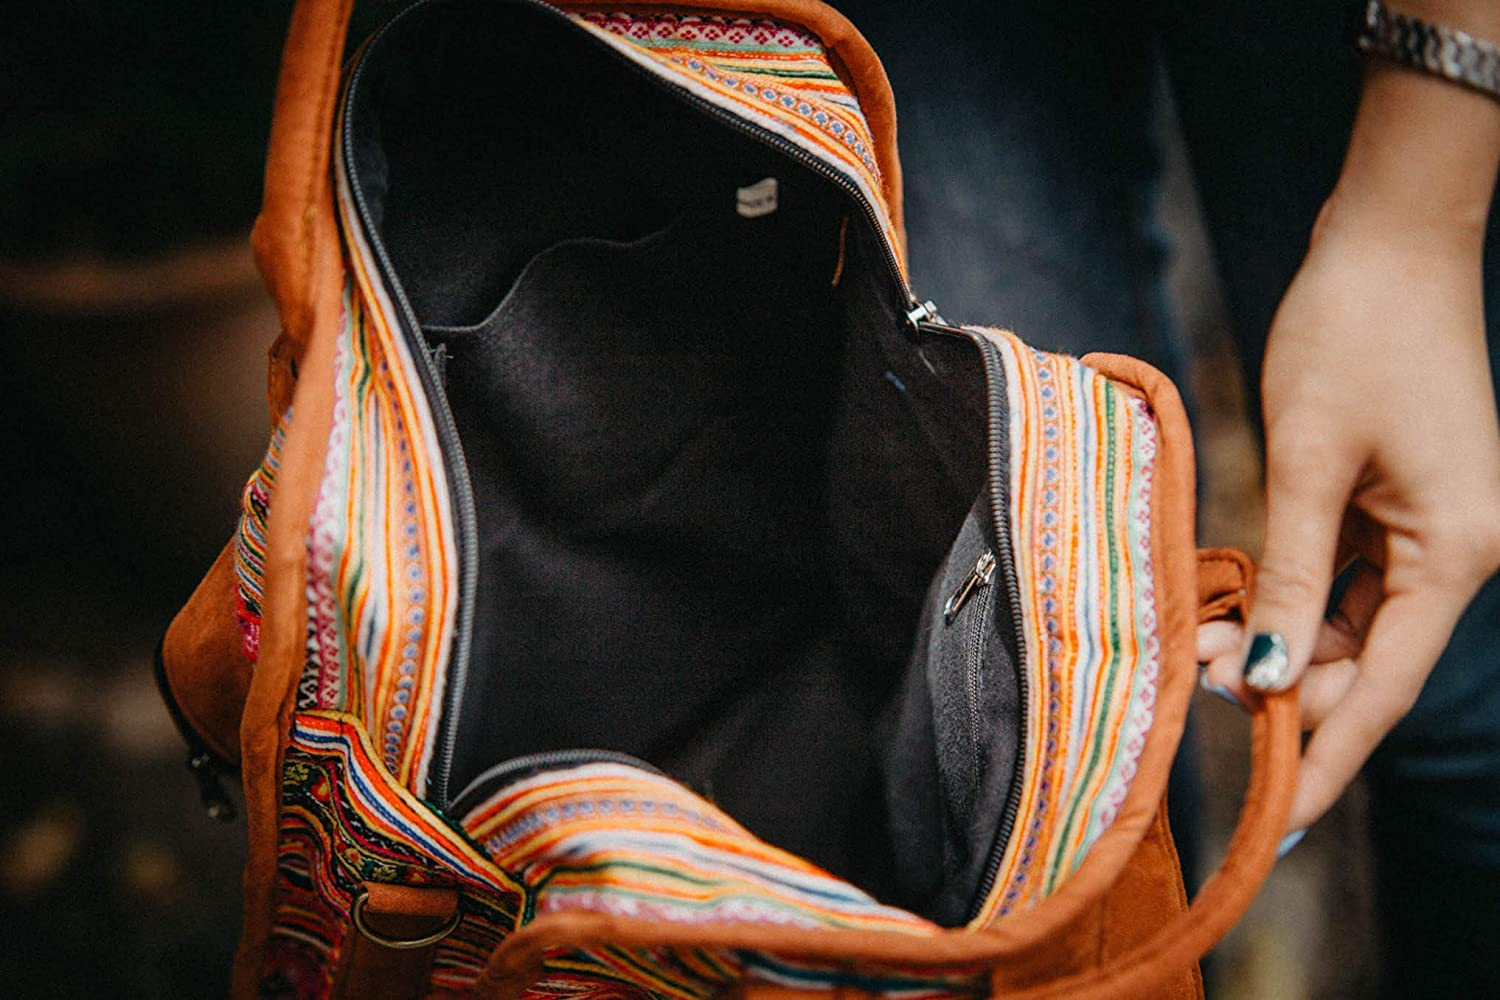 Unique Ethnic Bookback Fair Trade Backpack from Thailand Embroidered Backpack Changnoi One of a kind Backpack with Vintage Hmong Embroidery